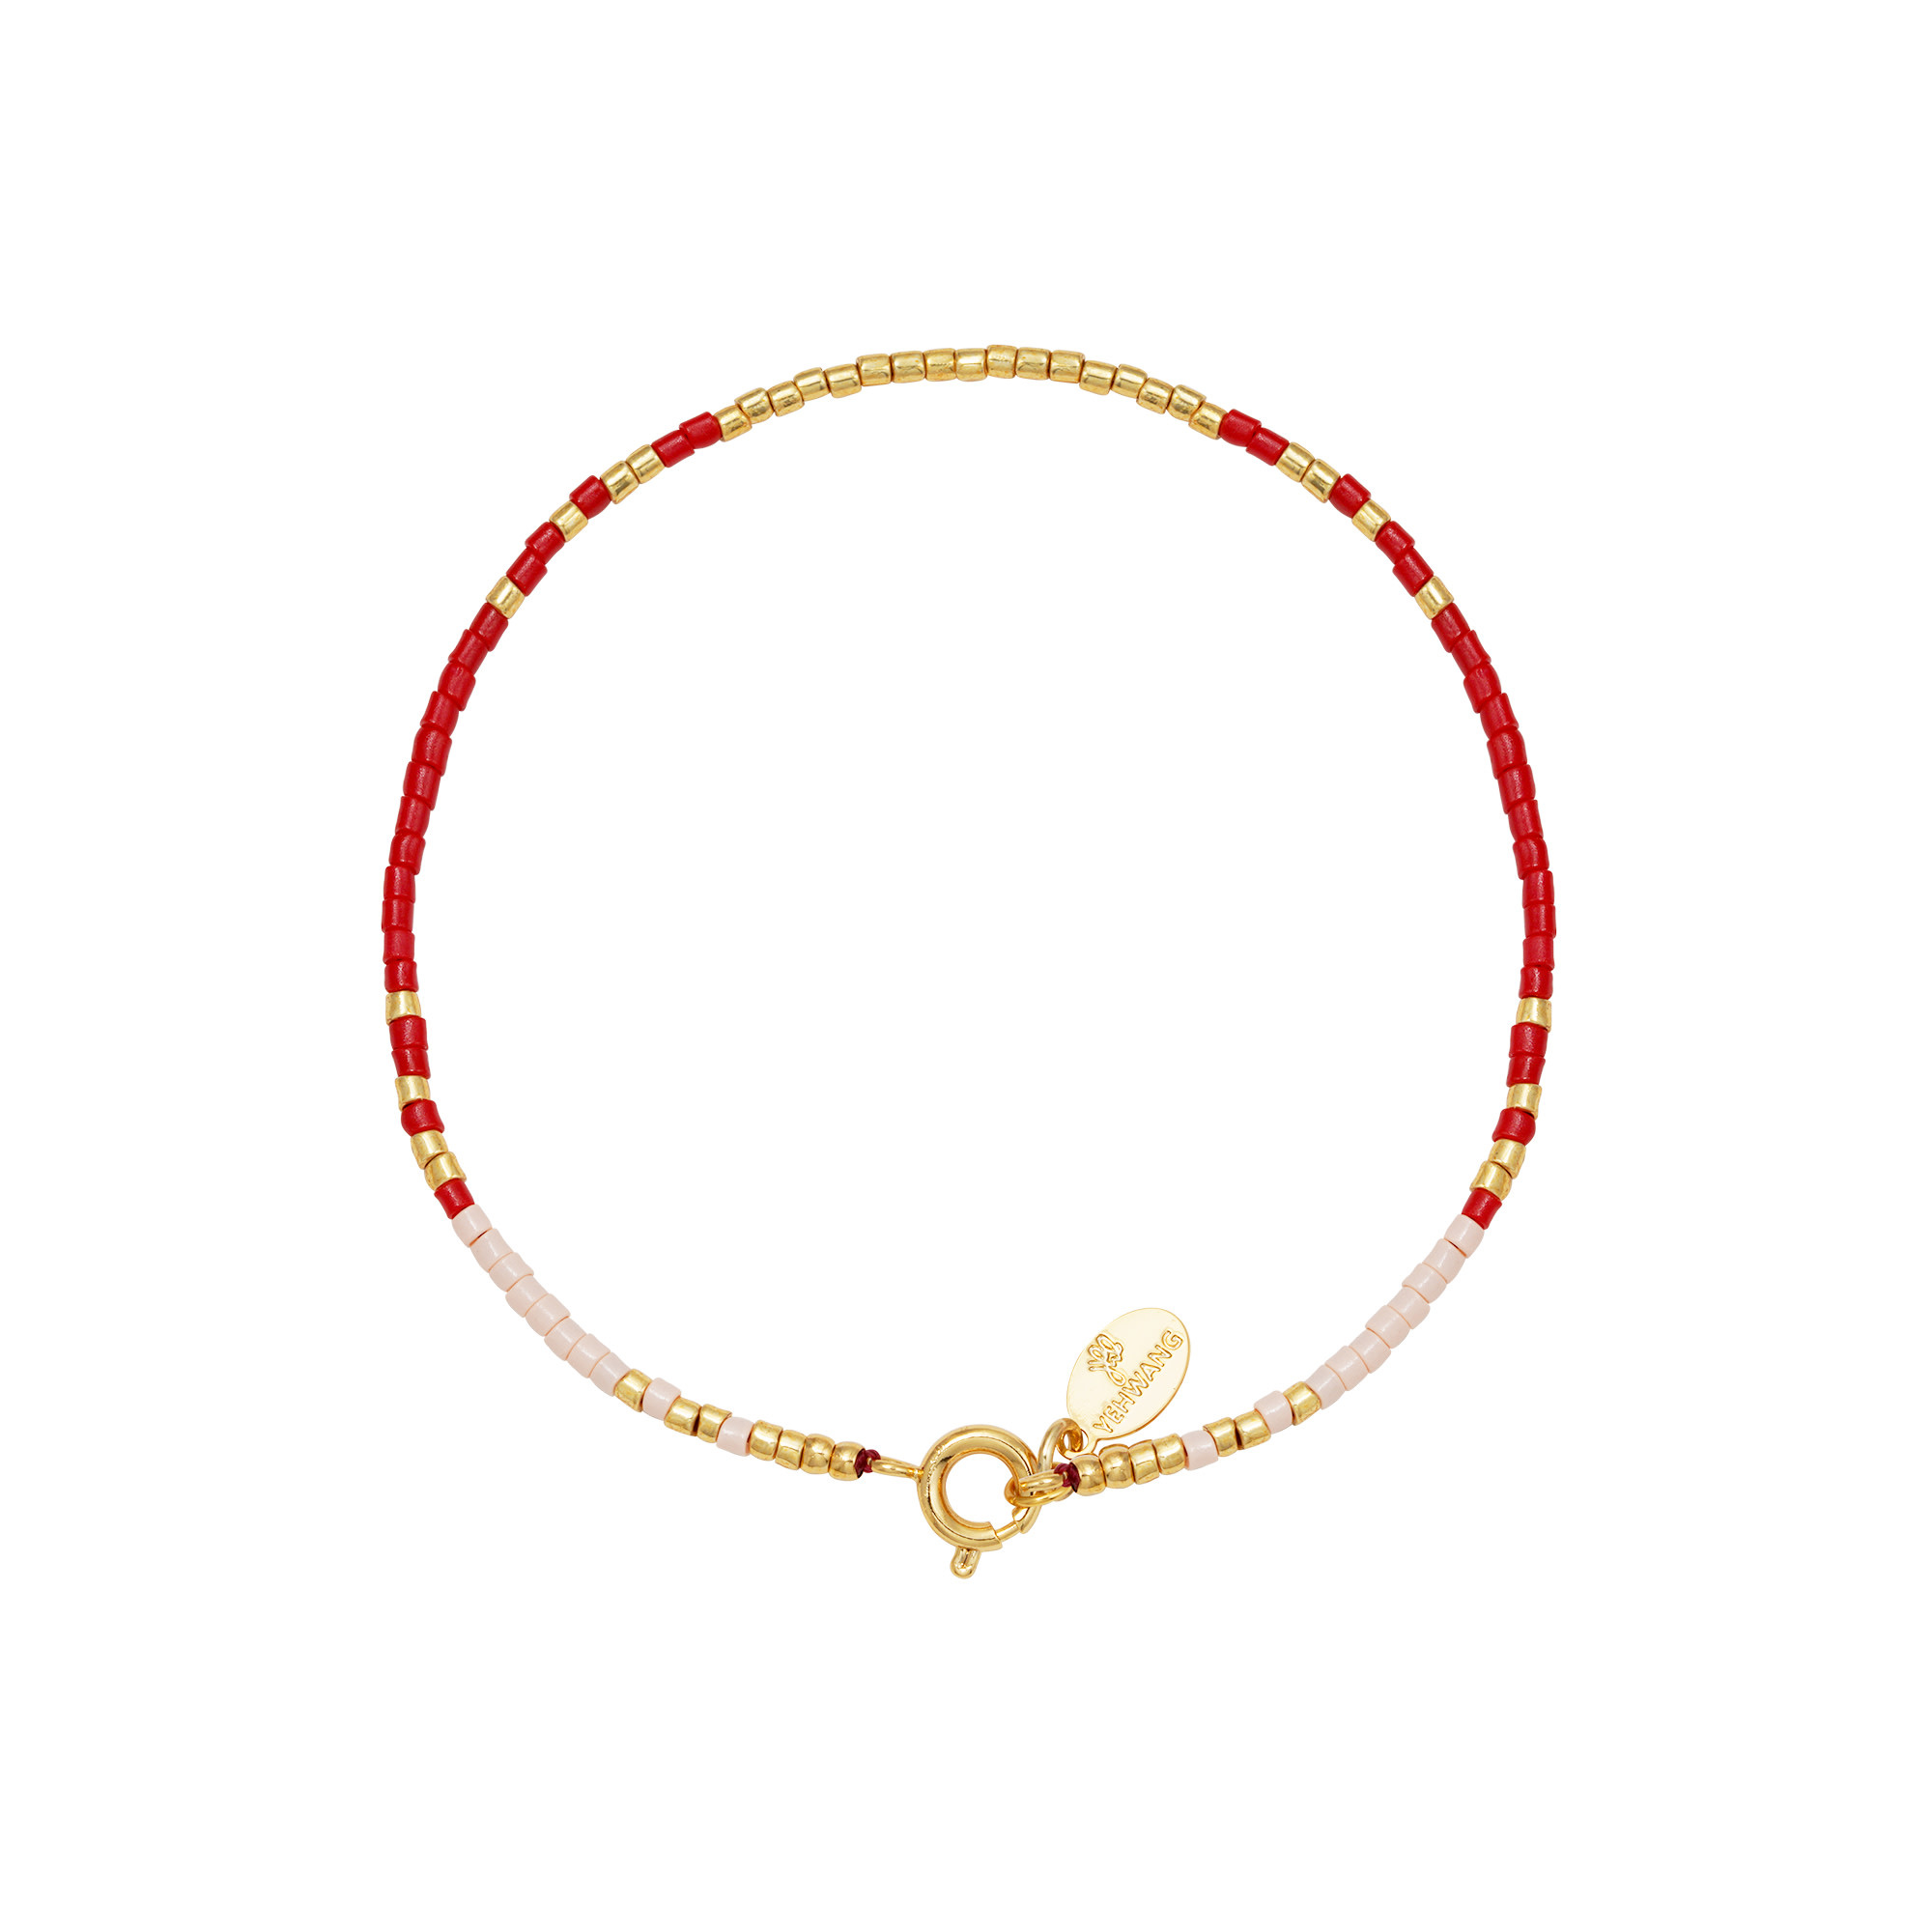 With love Bracelet delicate red